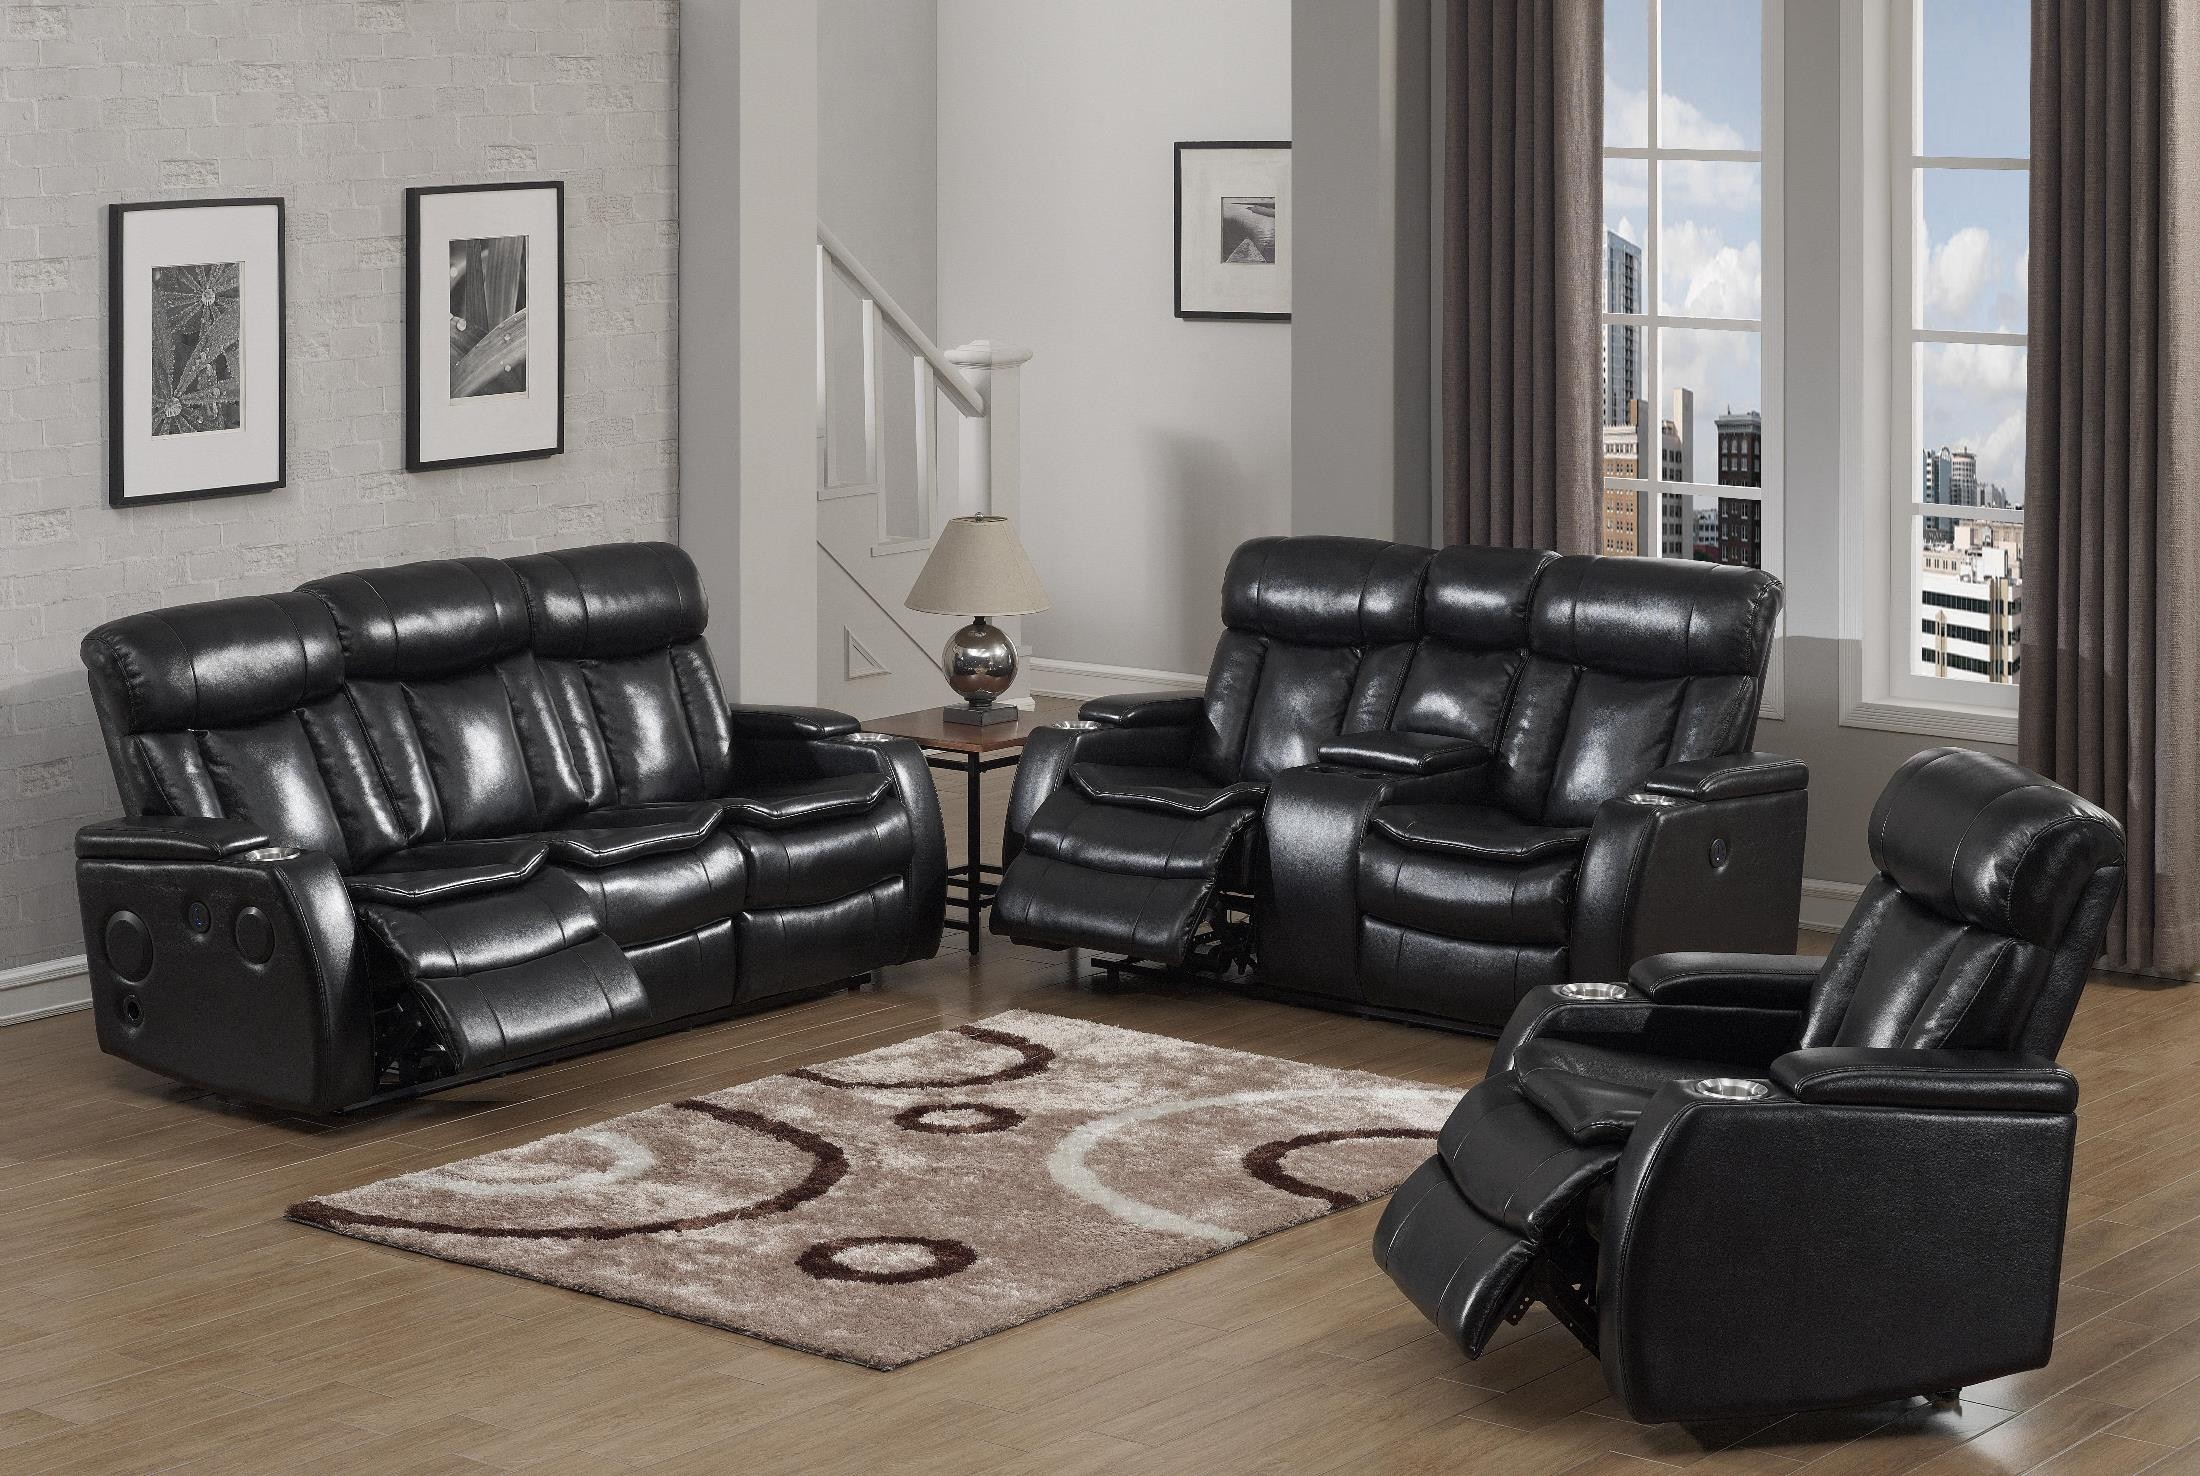 Galaxy Black Power Reclining Sofa From Prime Resource International 2093 412 083 Coleman